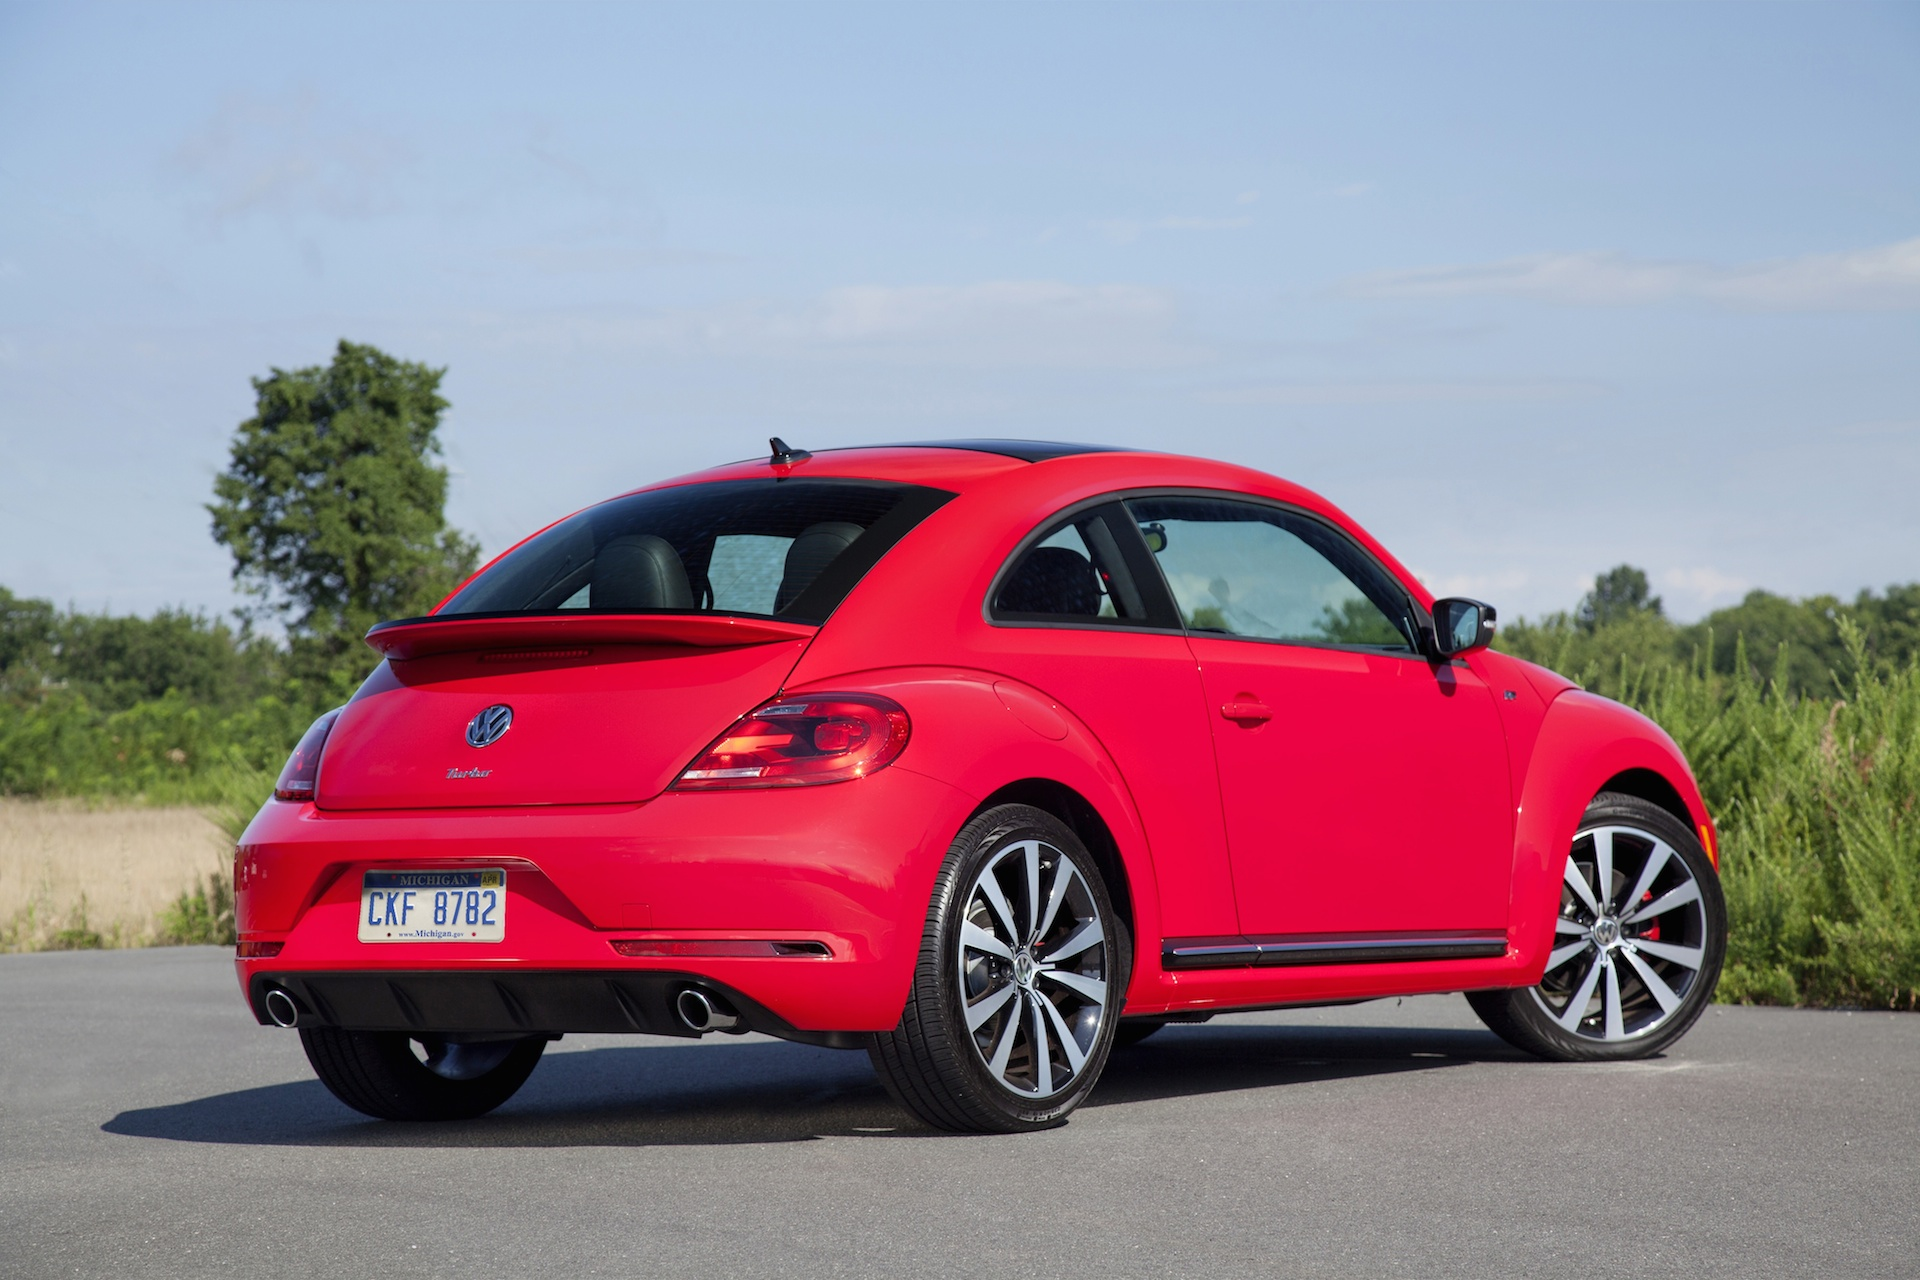 2015 Volkswagen Beetle  Vw  Review  Ratings  Specs  Prices